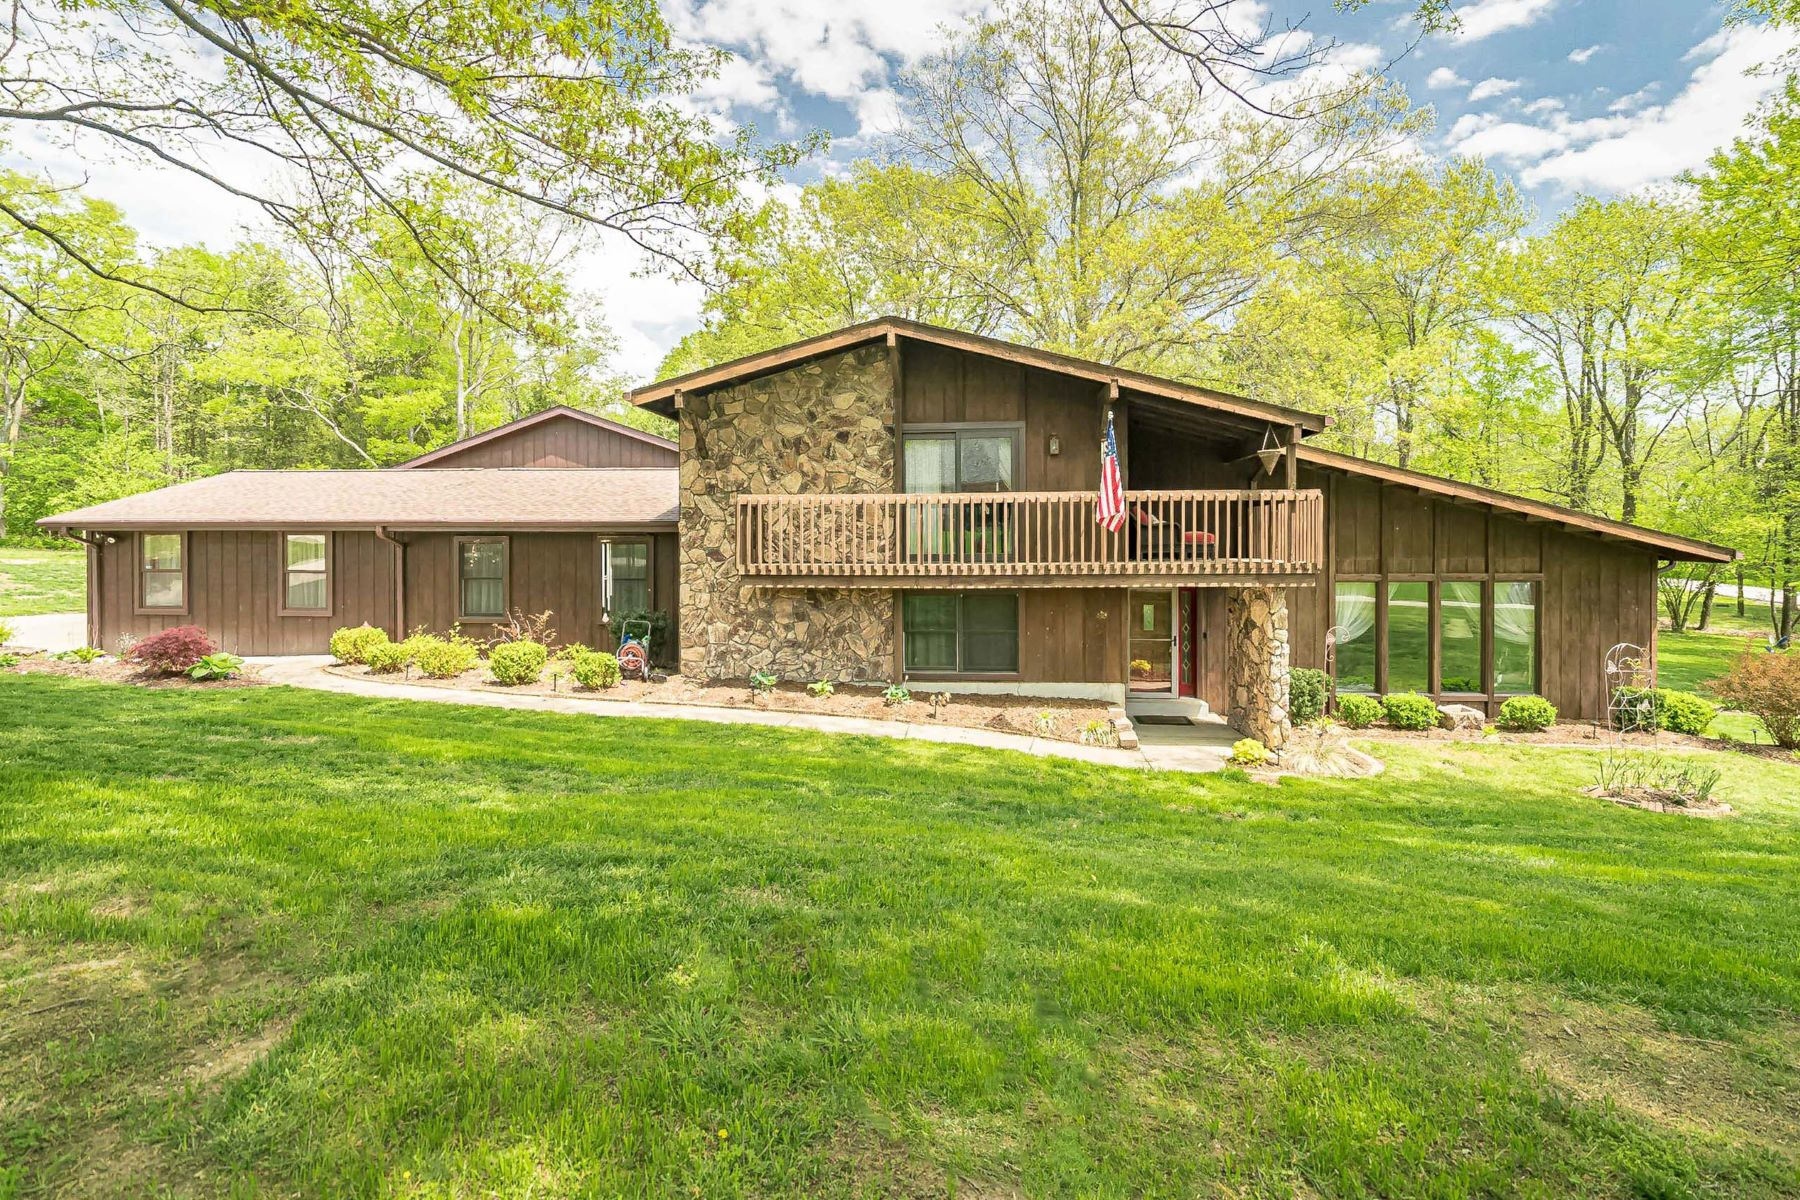 Single Family Homes for Sale at Spacious Home on 1.95 Acres With a Ten-Car Garage! 708 De Vaca Lane Weldon Spring, Missouri 63304 United States